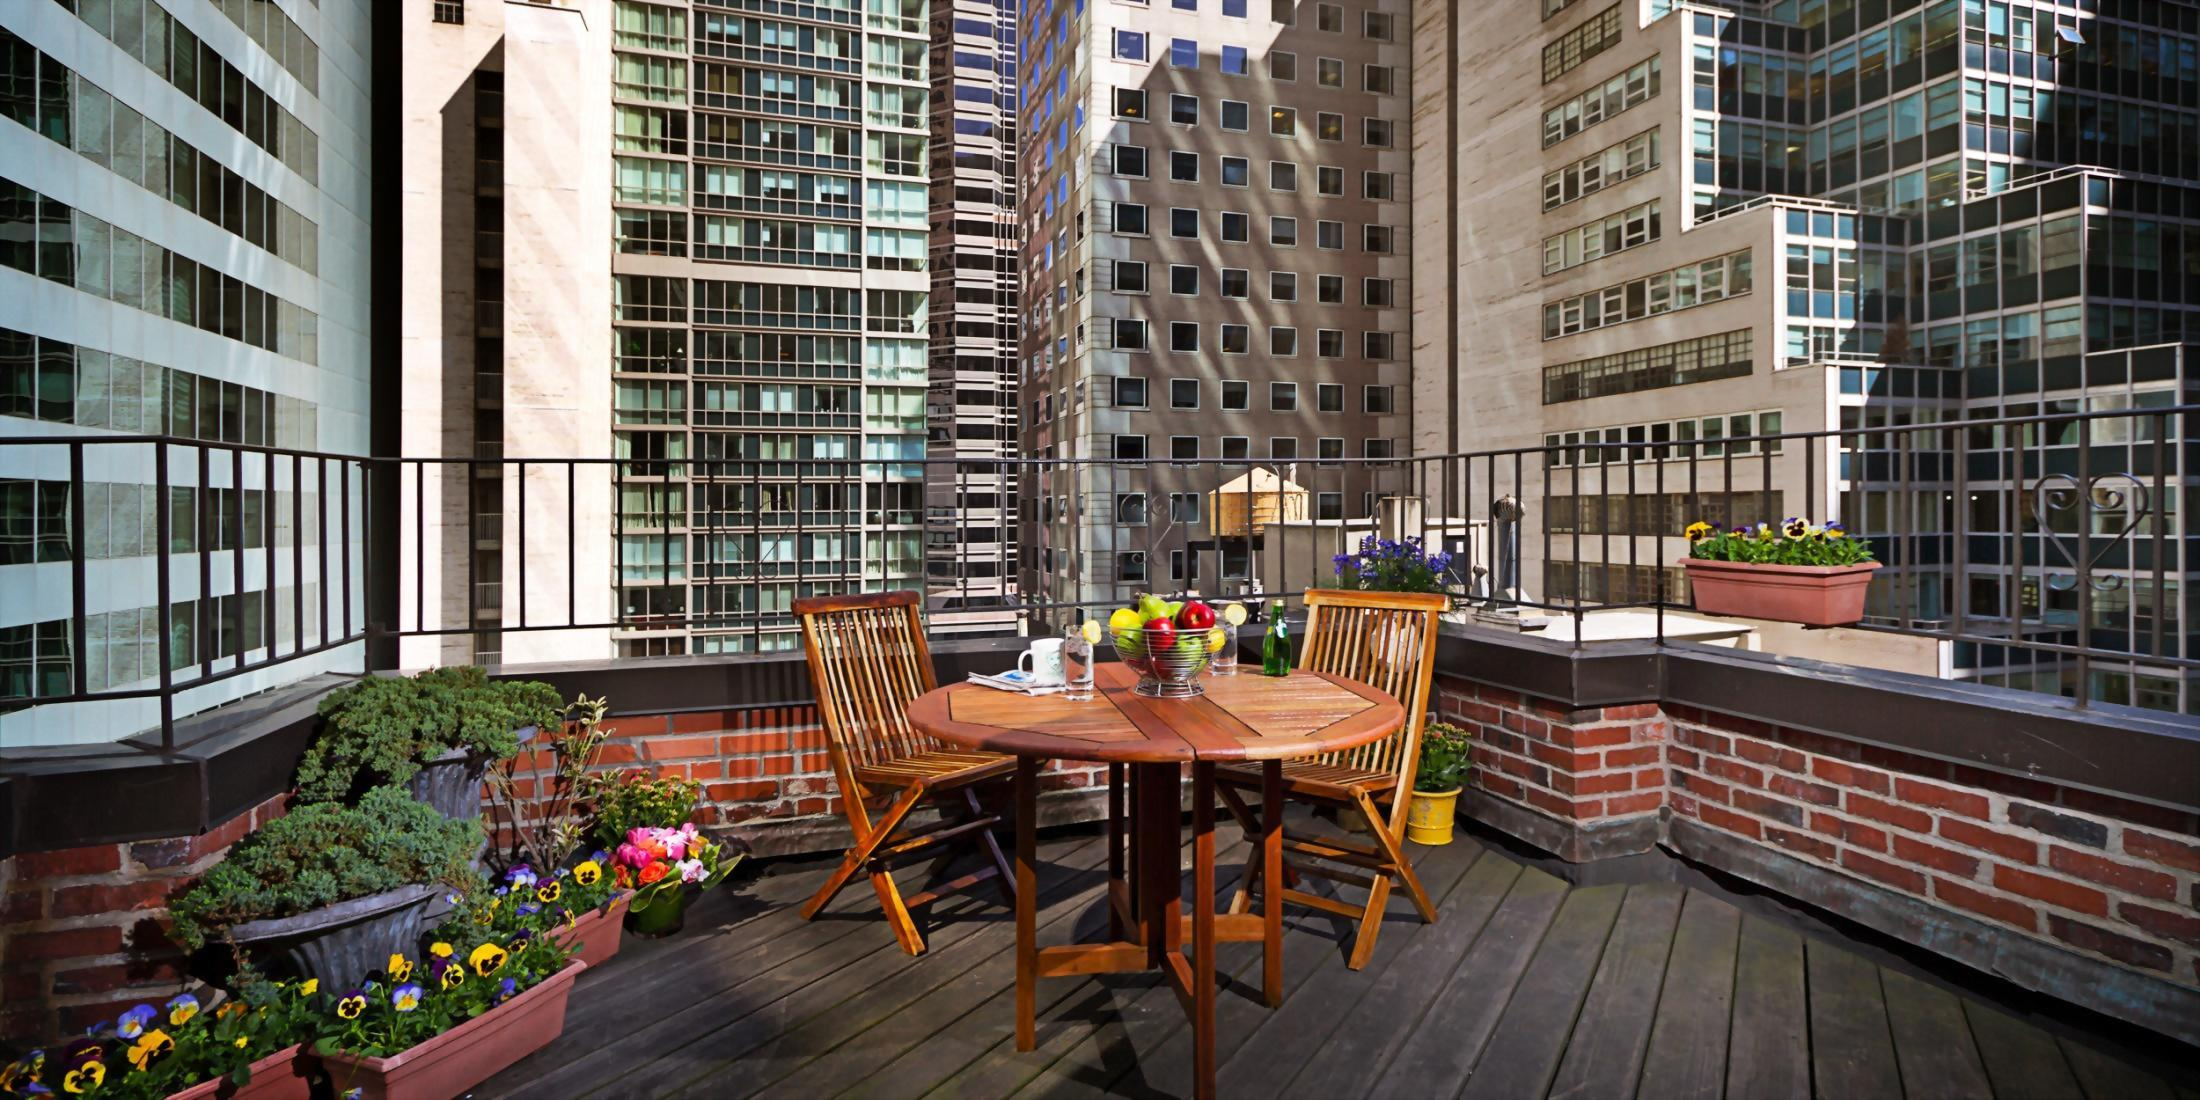 Outdoor Balcony at the Hotel Elysee in New York City.  Only 4 rooms include an out door balcony.